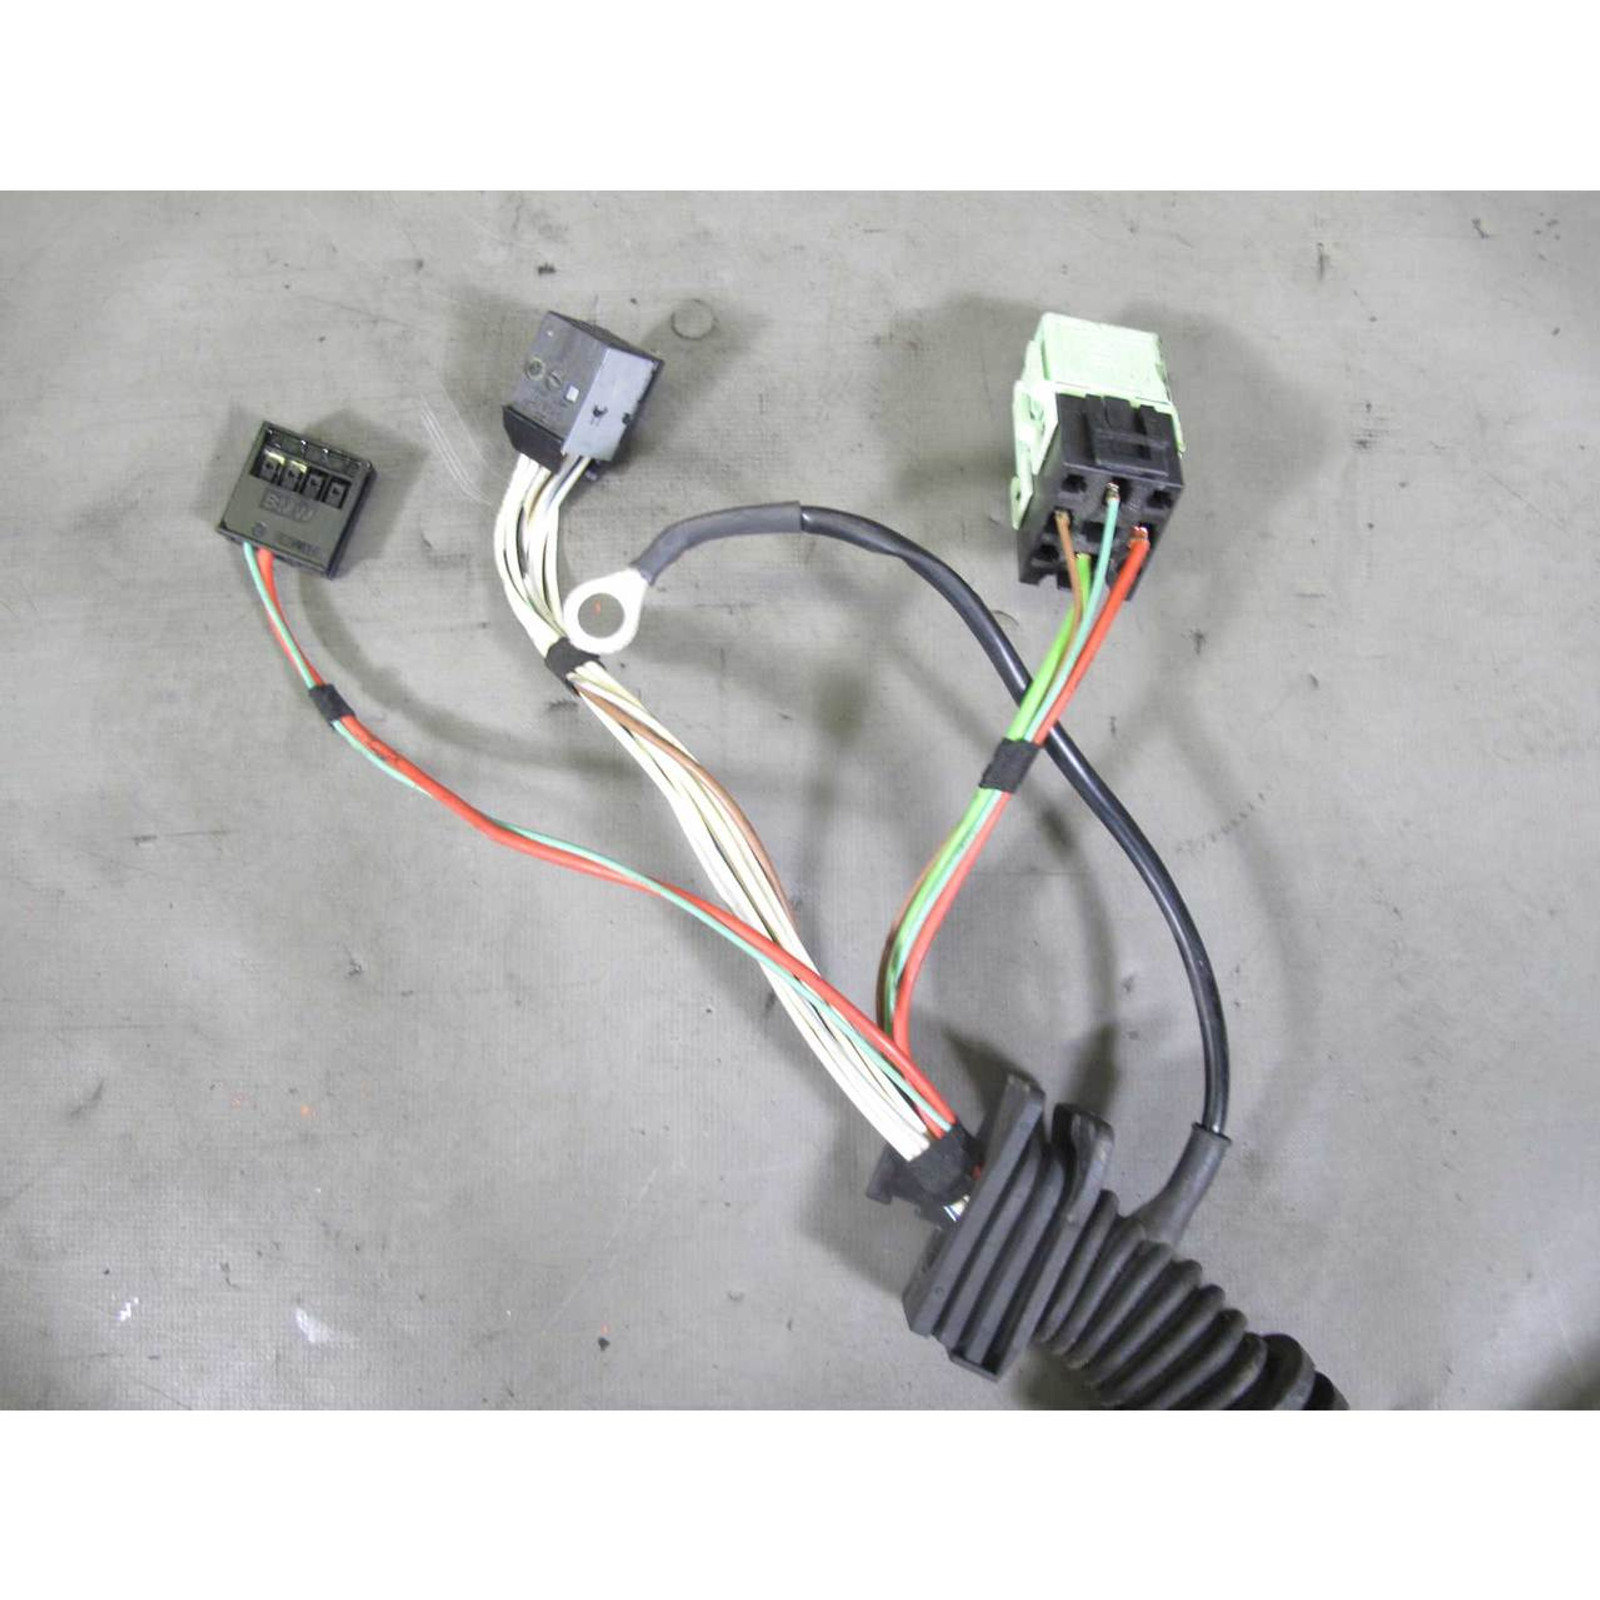 hight resolution of wrg 4274 bmw e70 wire charging harness2007 2010 bmw e70 x5 4 8i n62tu v8